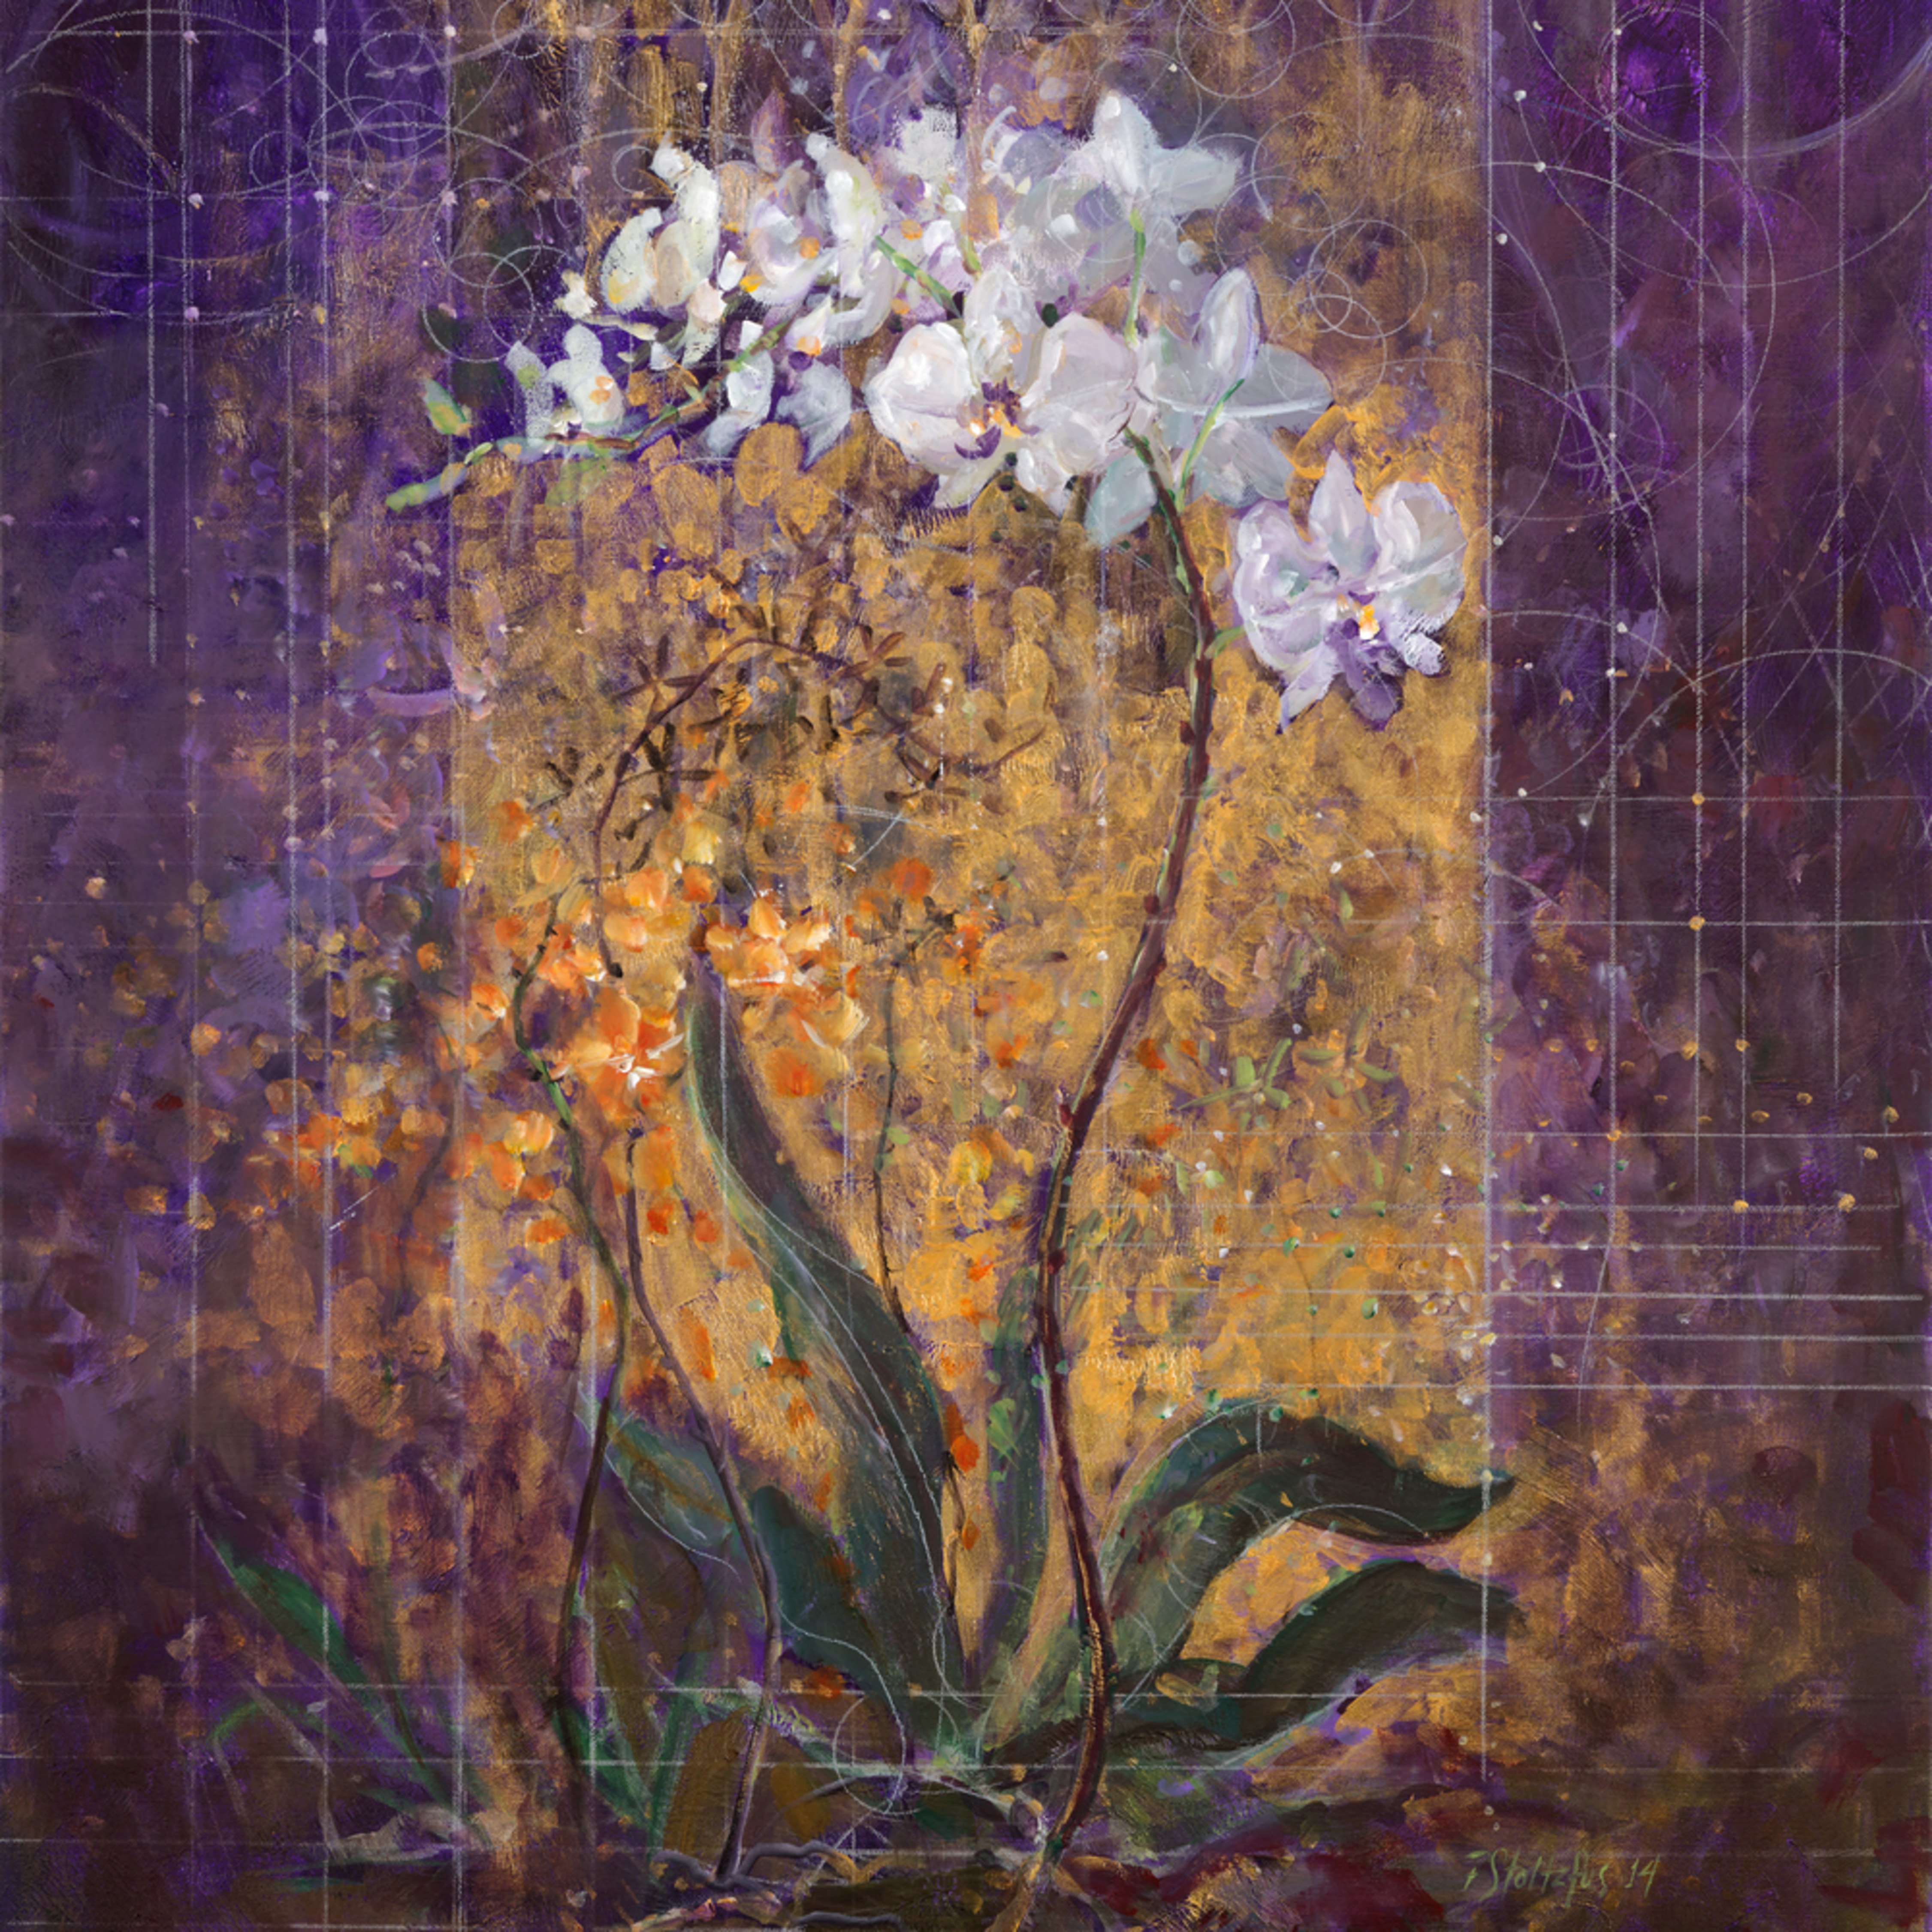 Creation of the orchids mwgi72